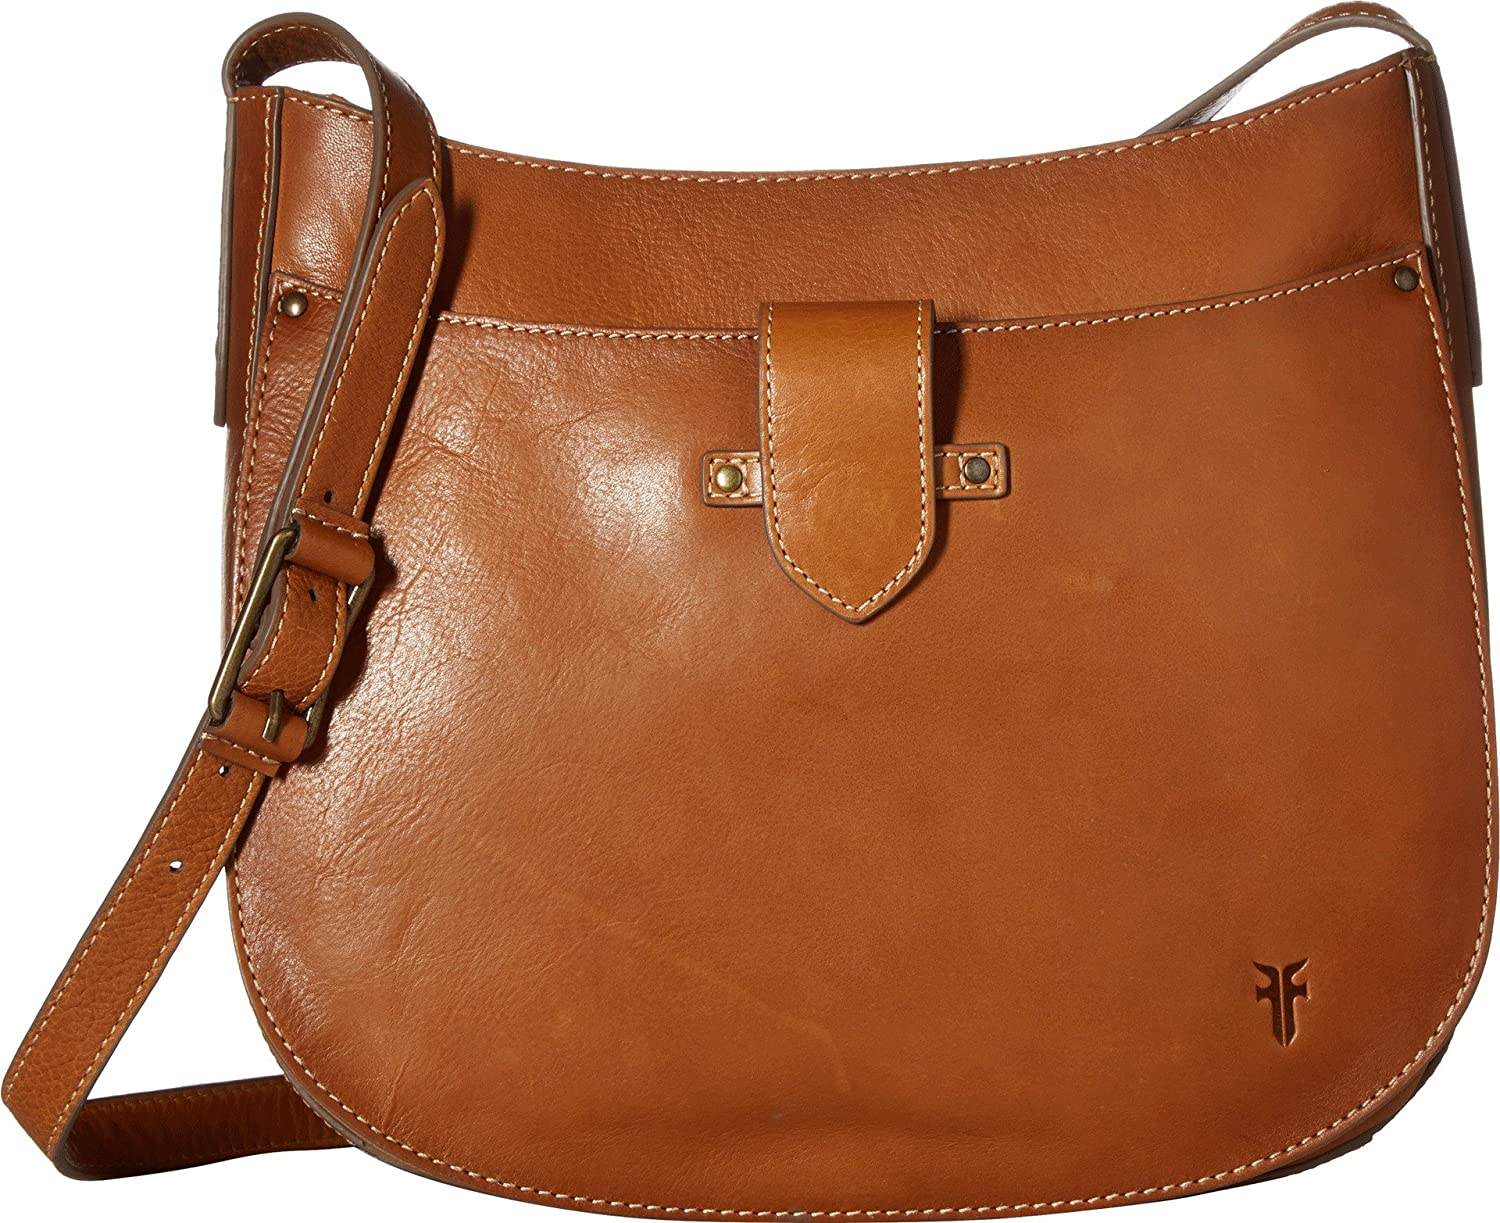 Frye Womens Olivia Large Crossbody